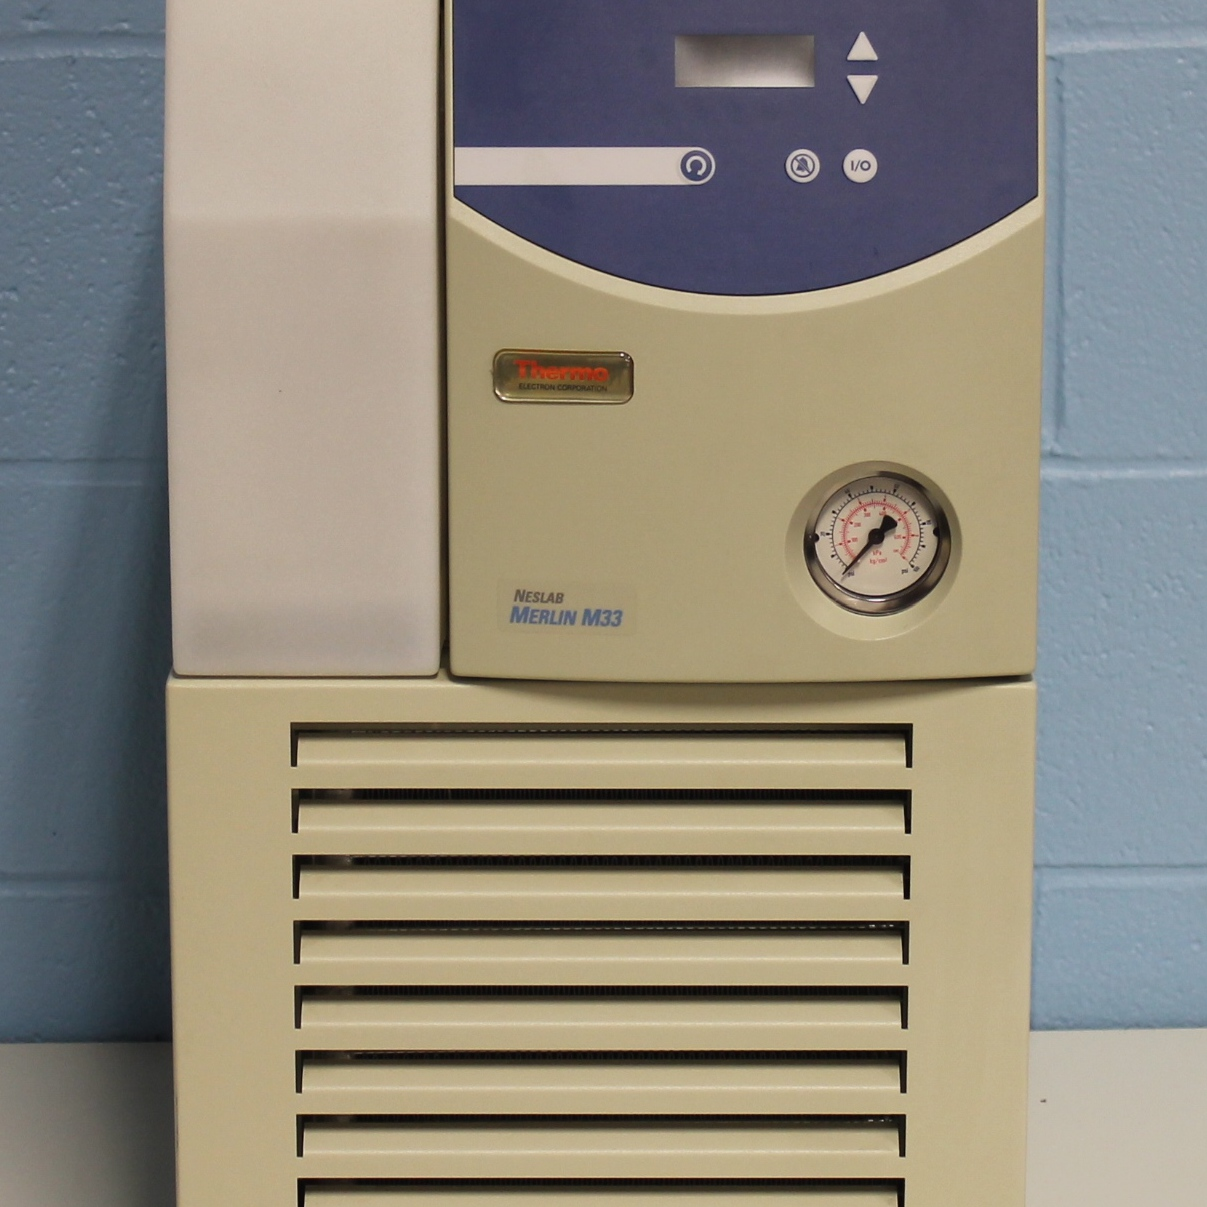 Thermo/NesLab Merlin M33 Recirculating Chiller Image